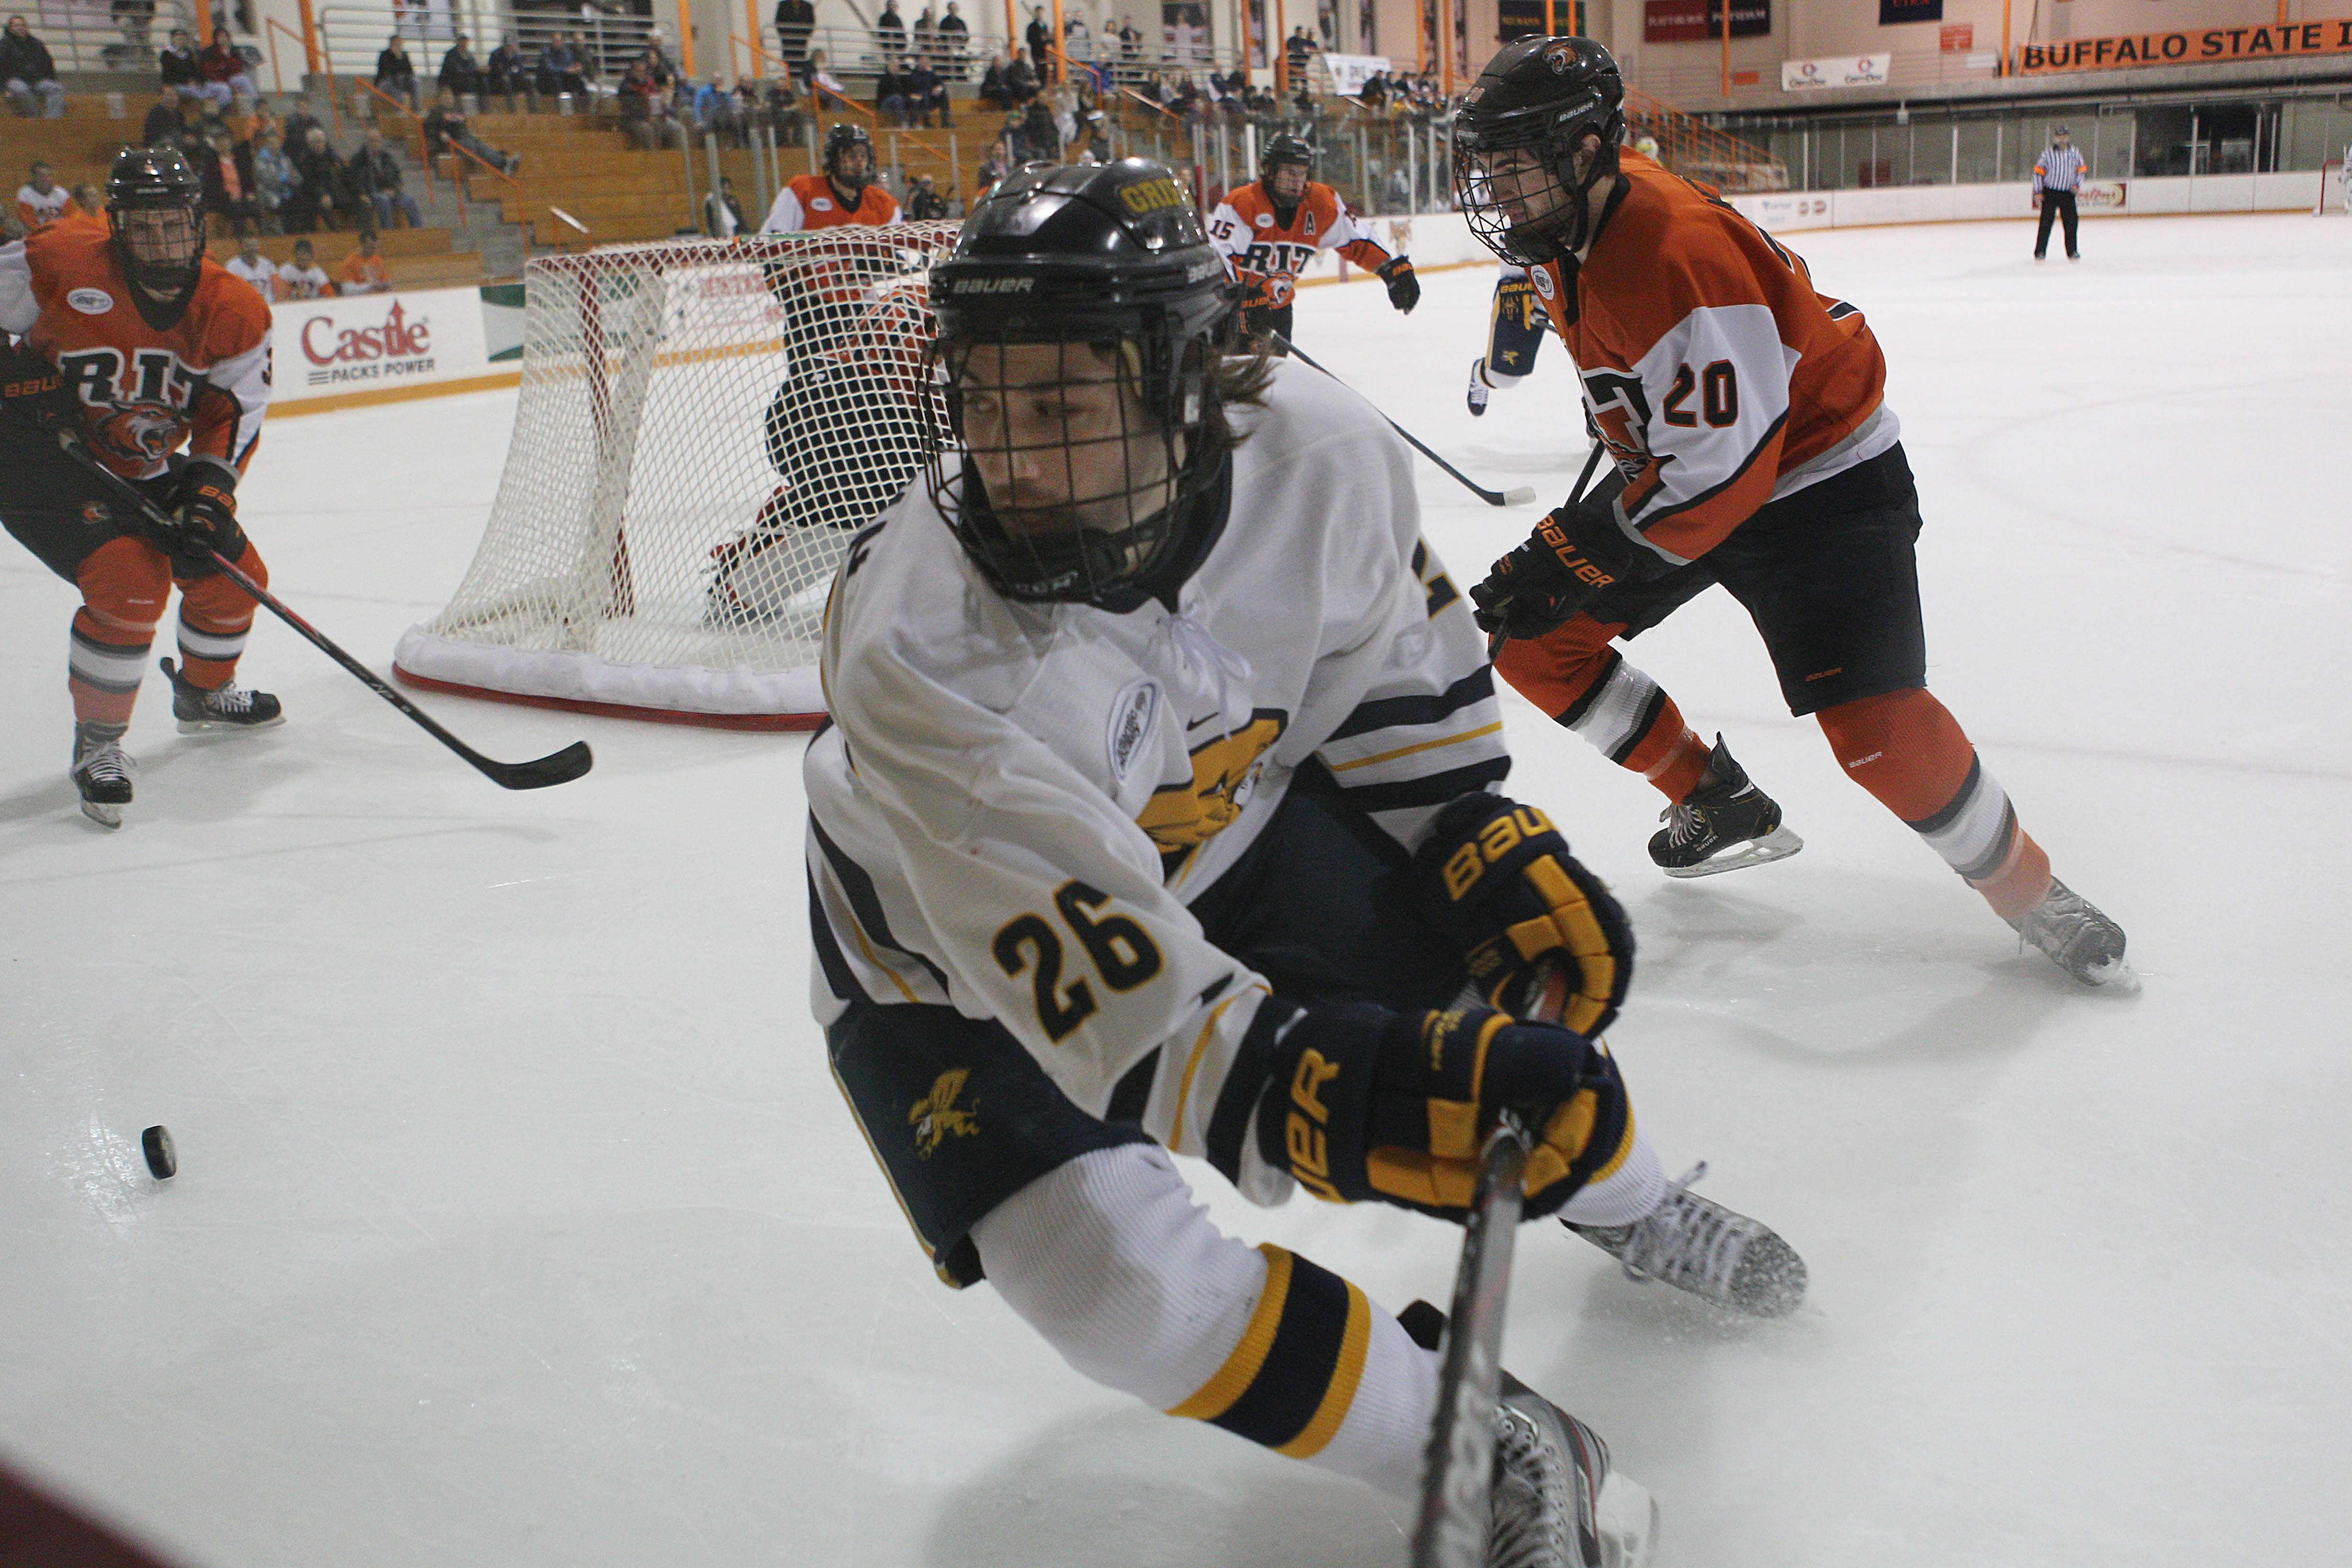 Patrick Sullivan is one of seven seniors who will play their last home game tonight for Canisius College.